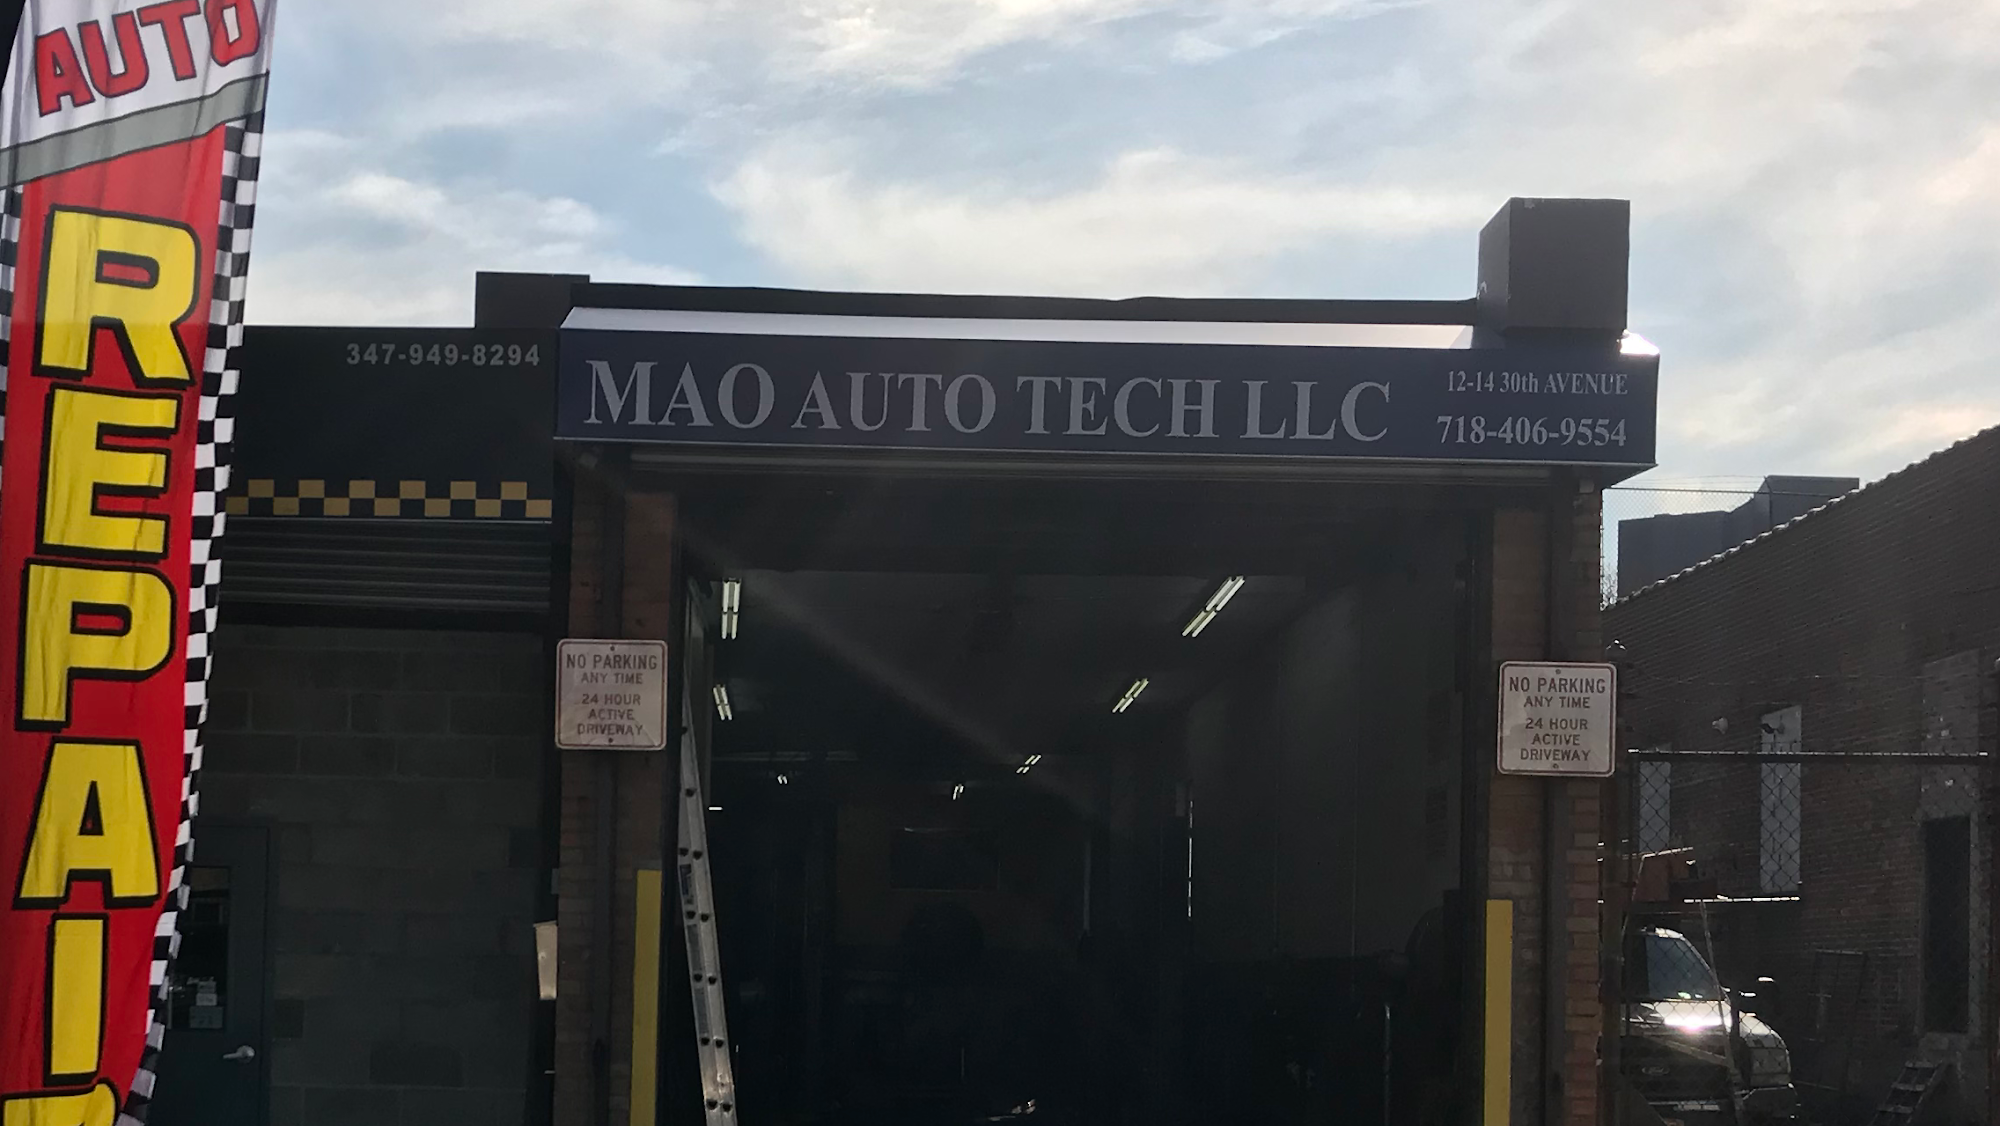 Mao Auto Tech   Auto Repair & NYS Inspection 12-14 30th Ave, Queens